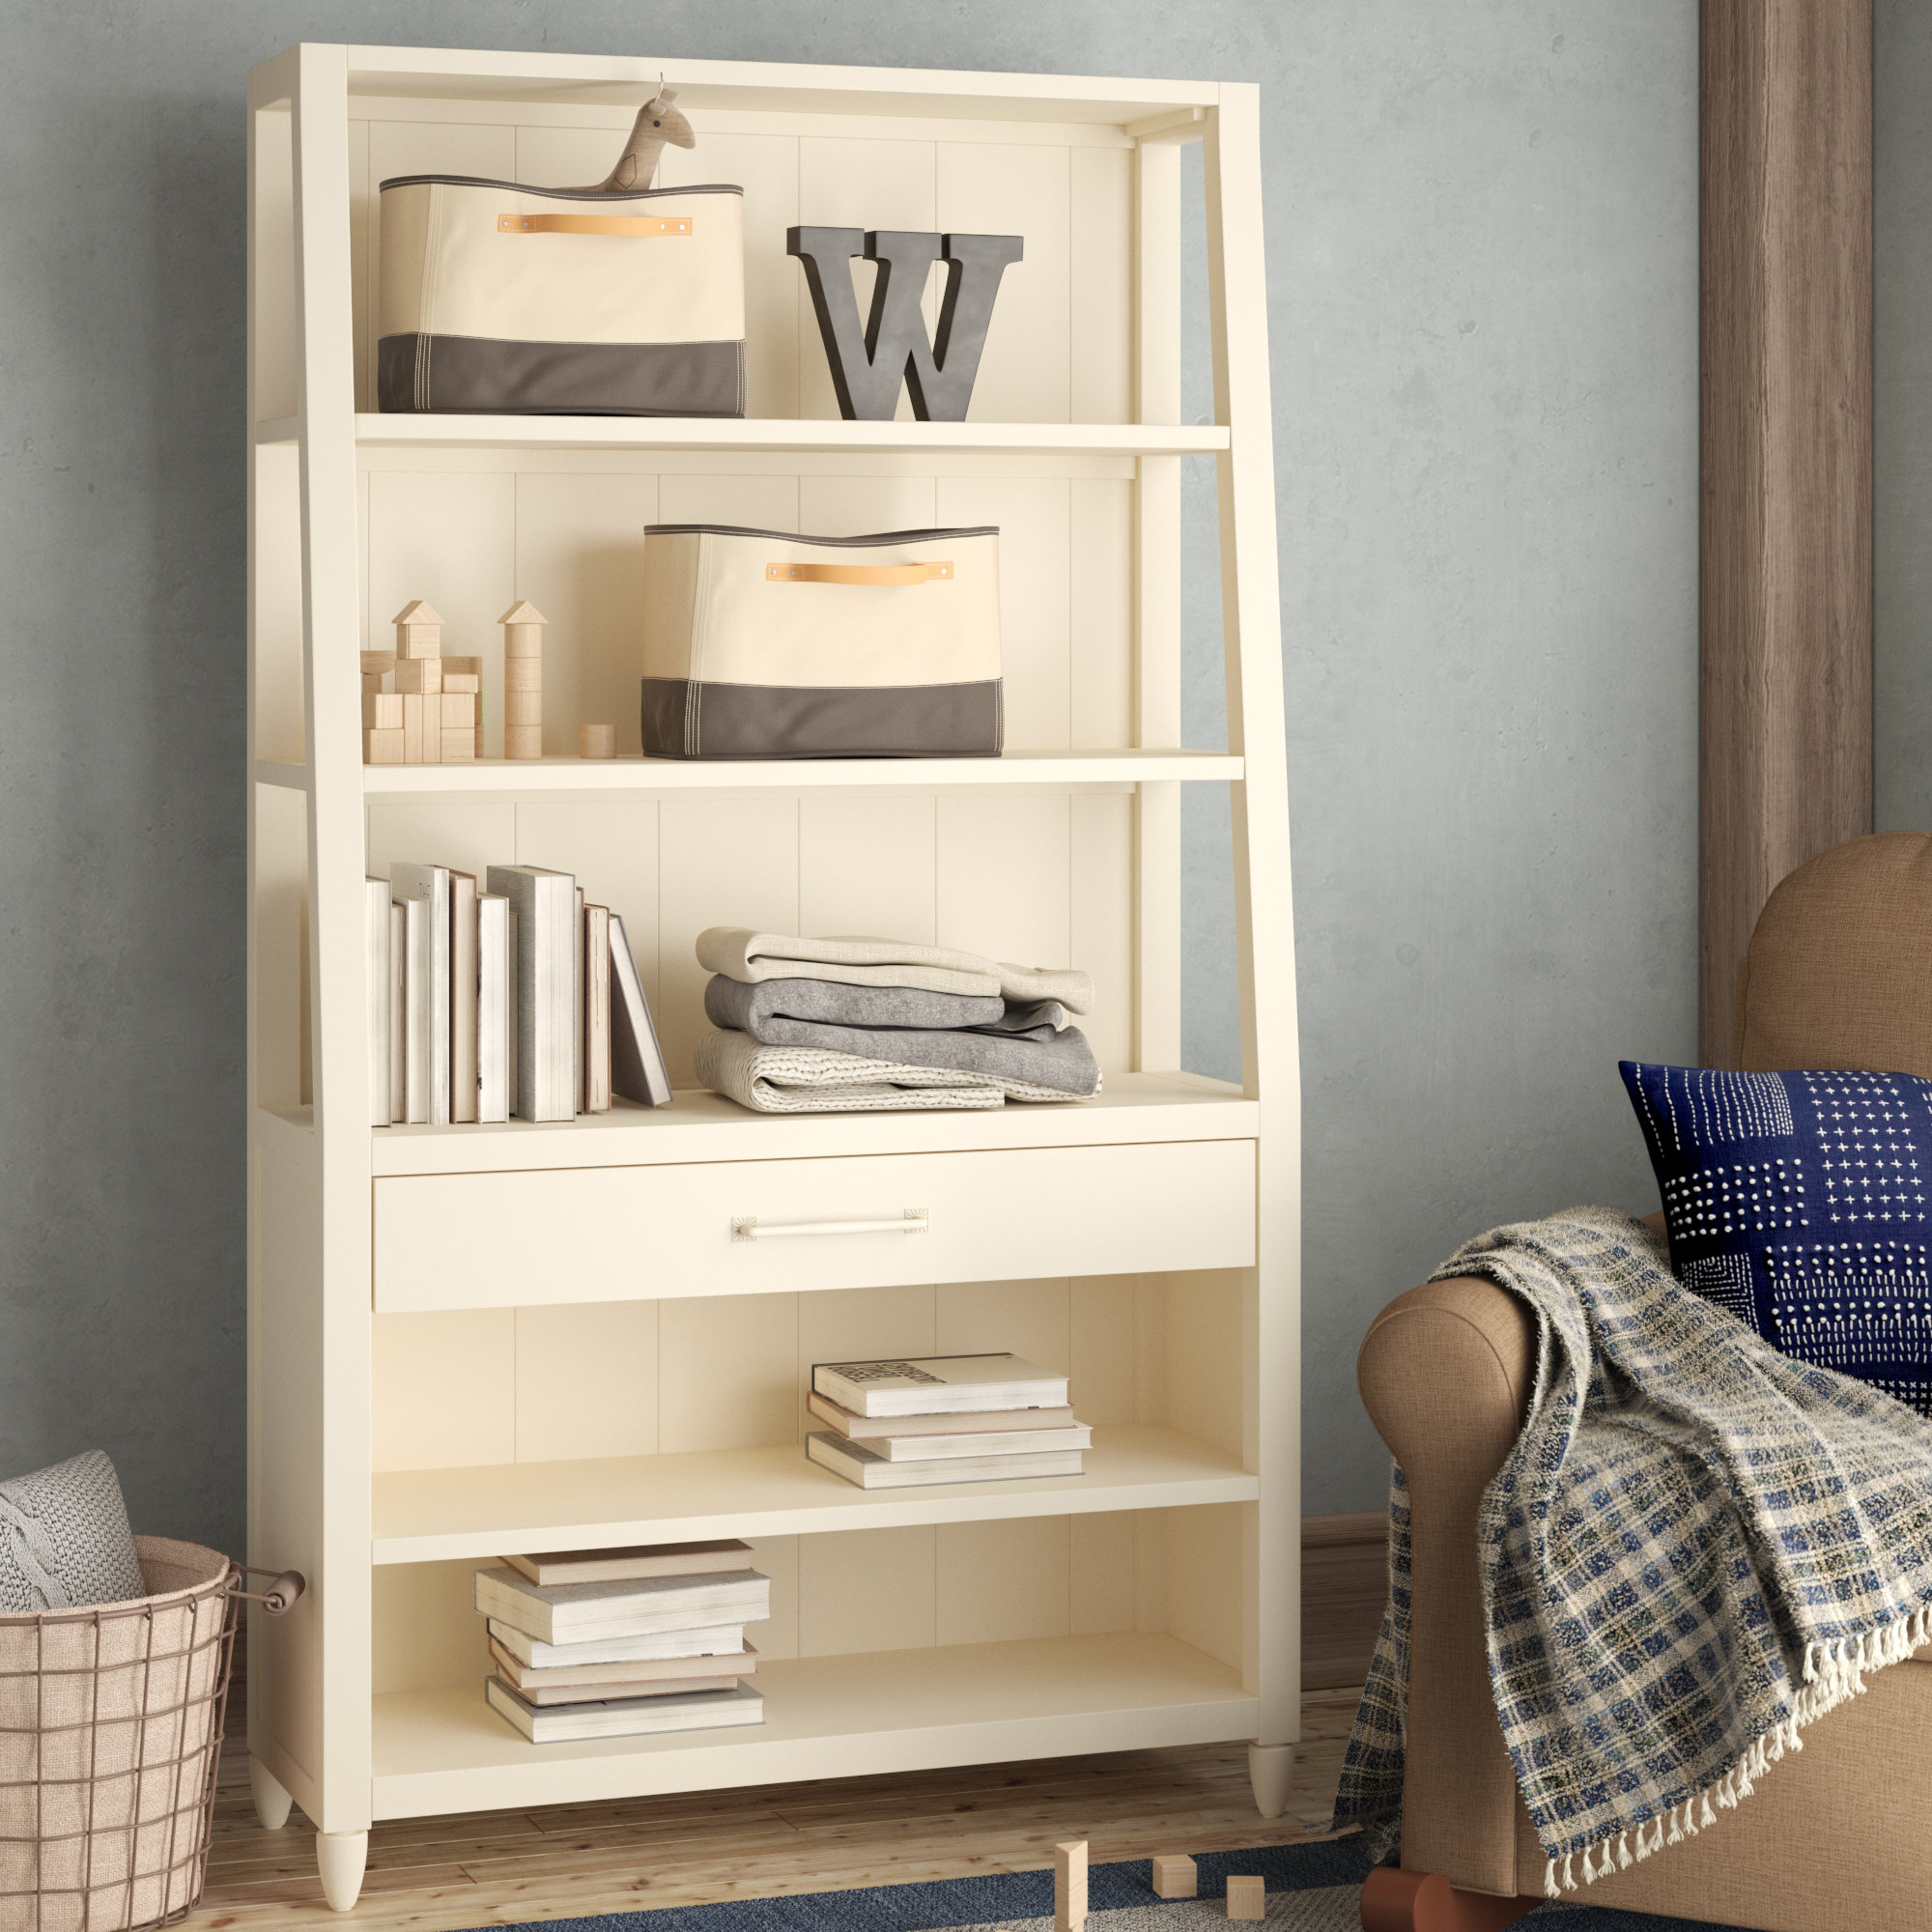 2019 Oridatown Standard Bookcases Intended For Affonso Standard Bookcase & Reviews (Gallery 10 of 20)